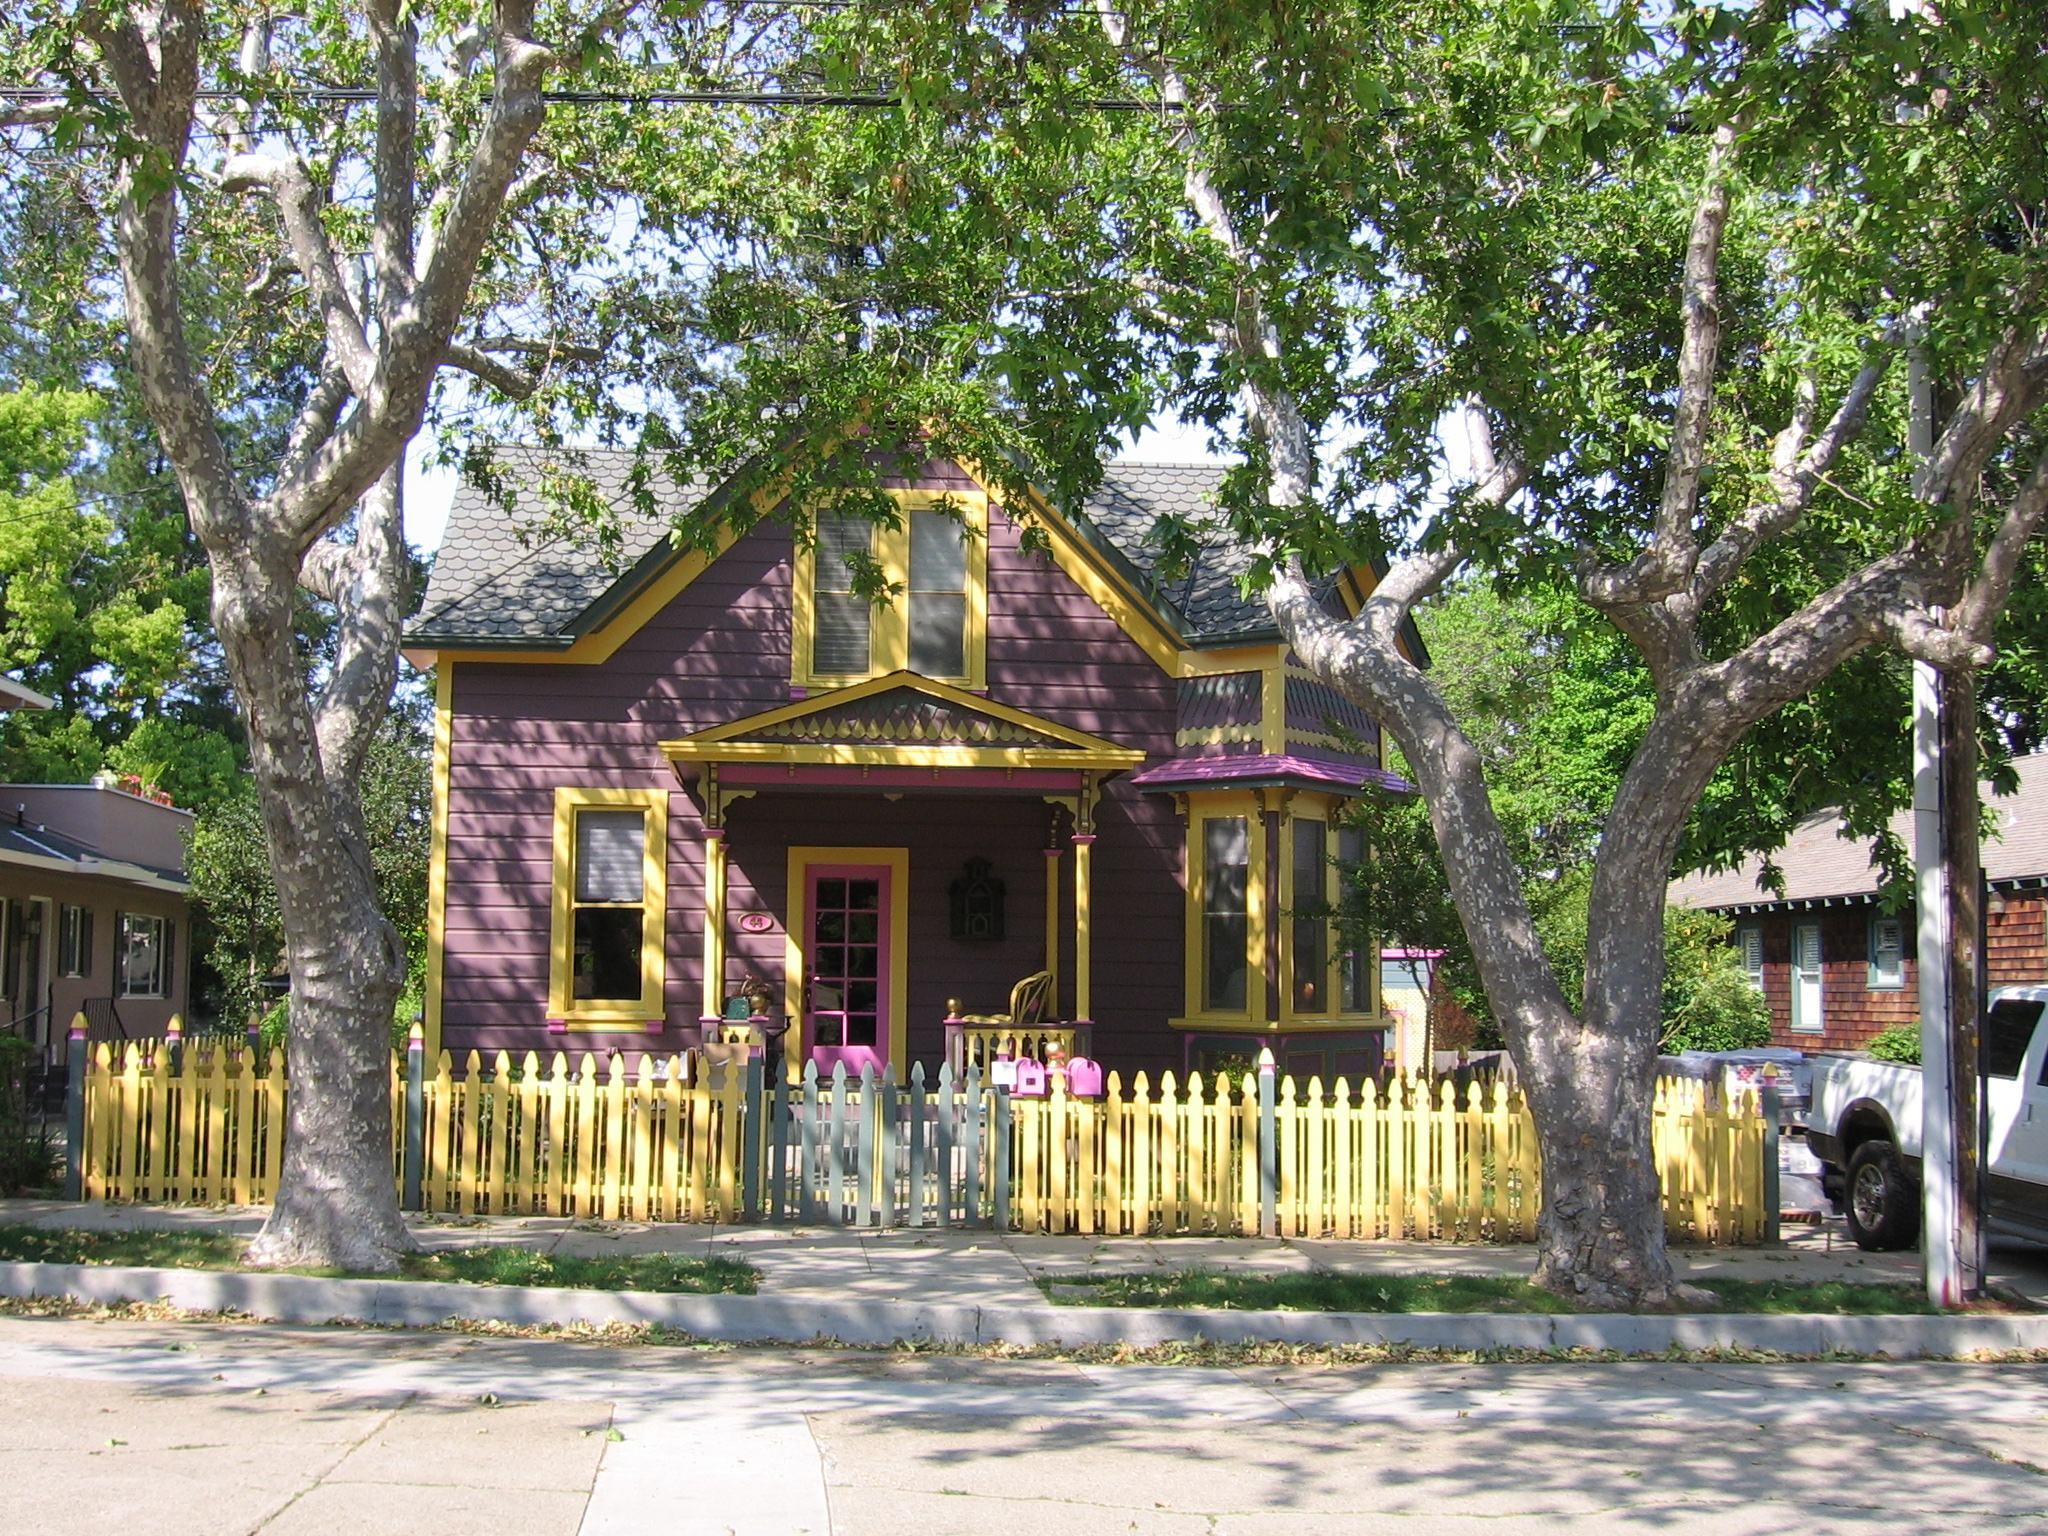 IMG 0020 - How old are the oldest houses in Los Gatos and nearby?